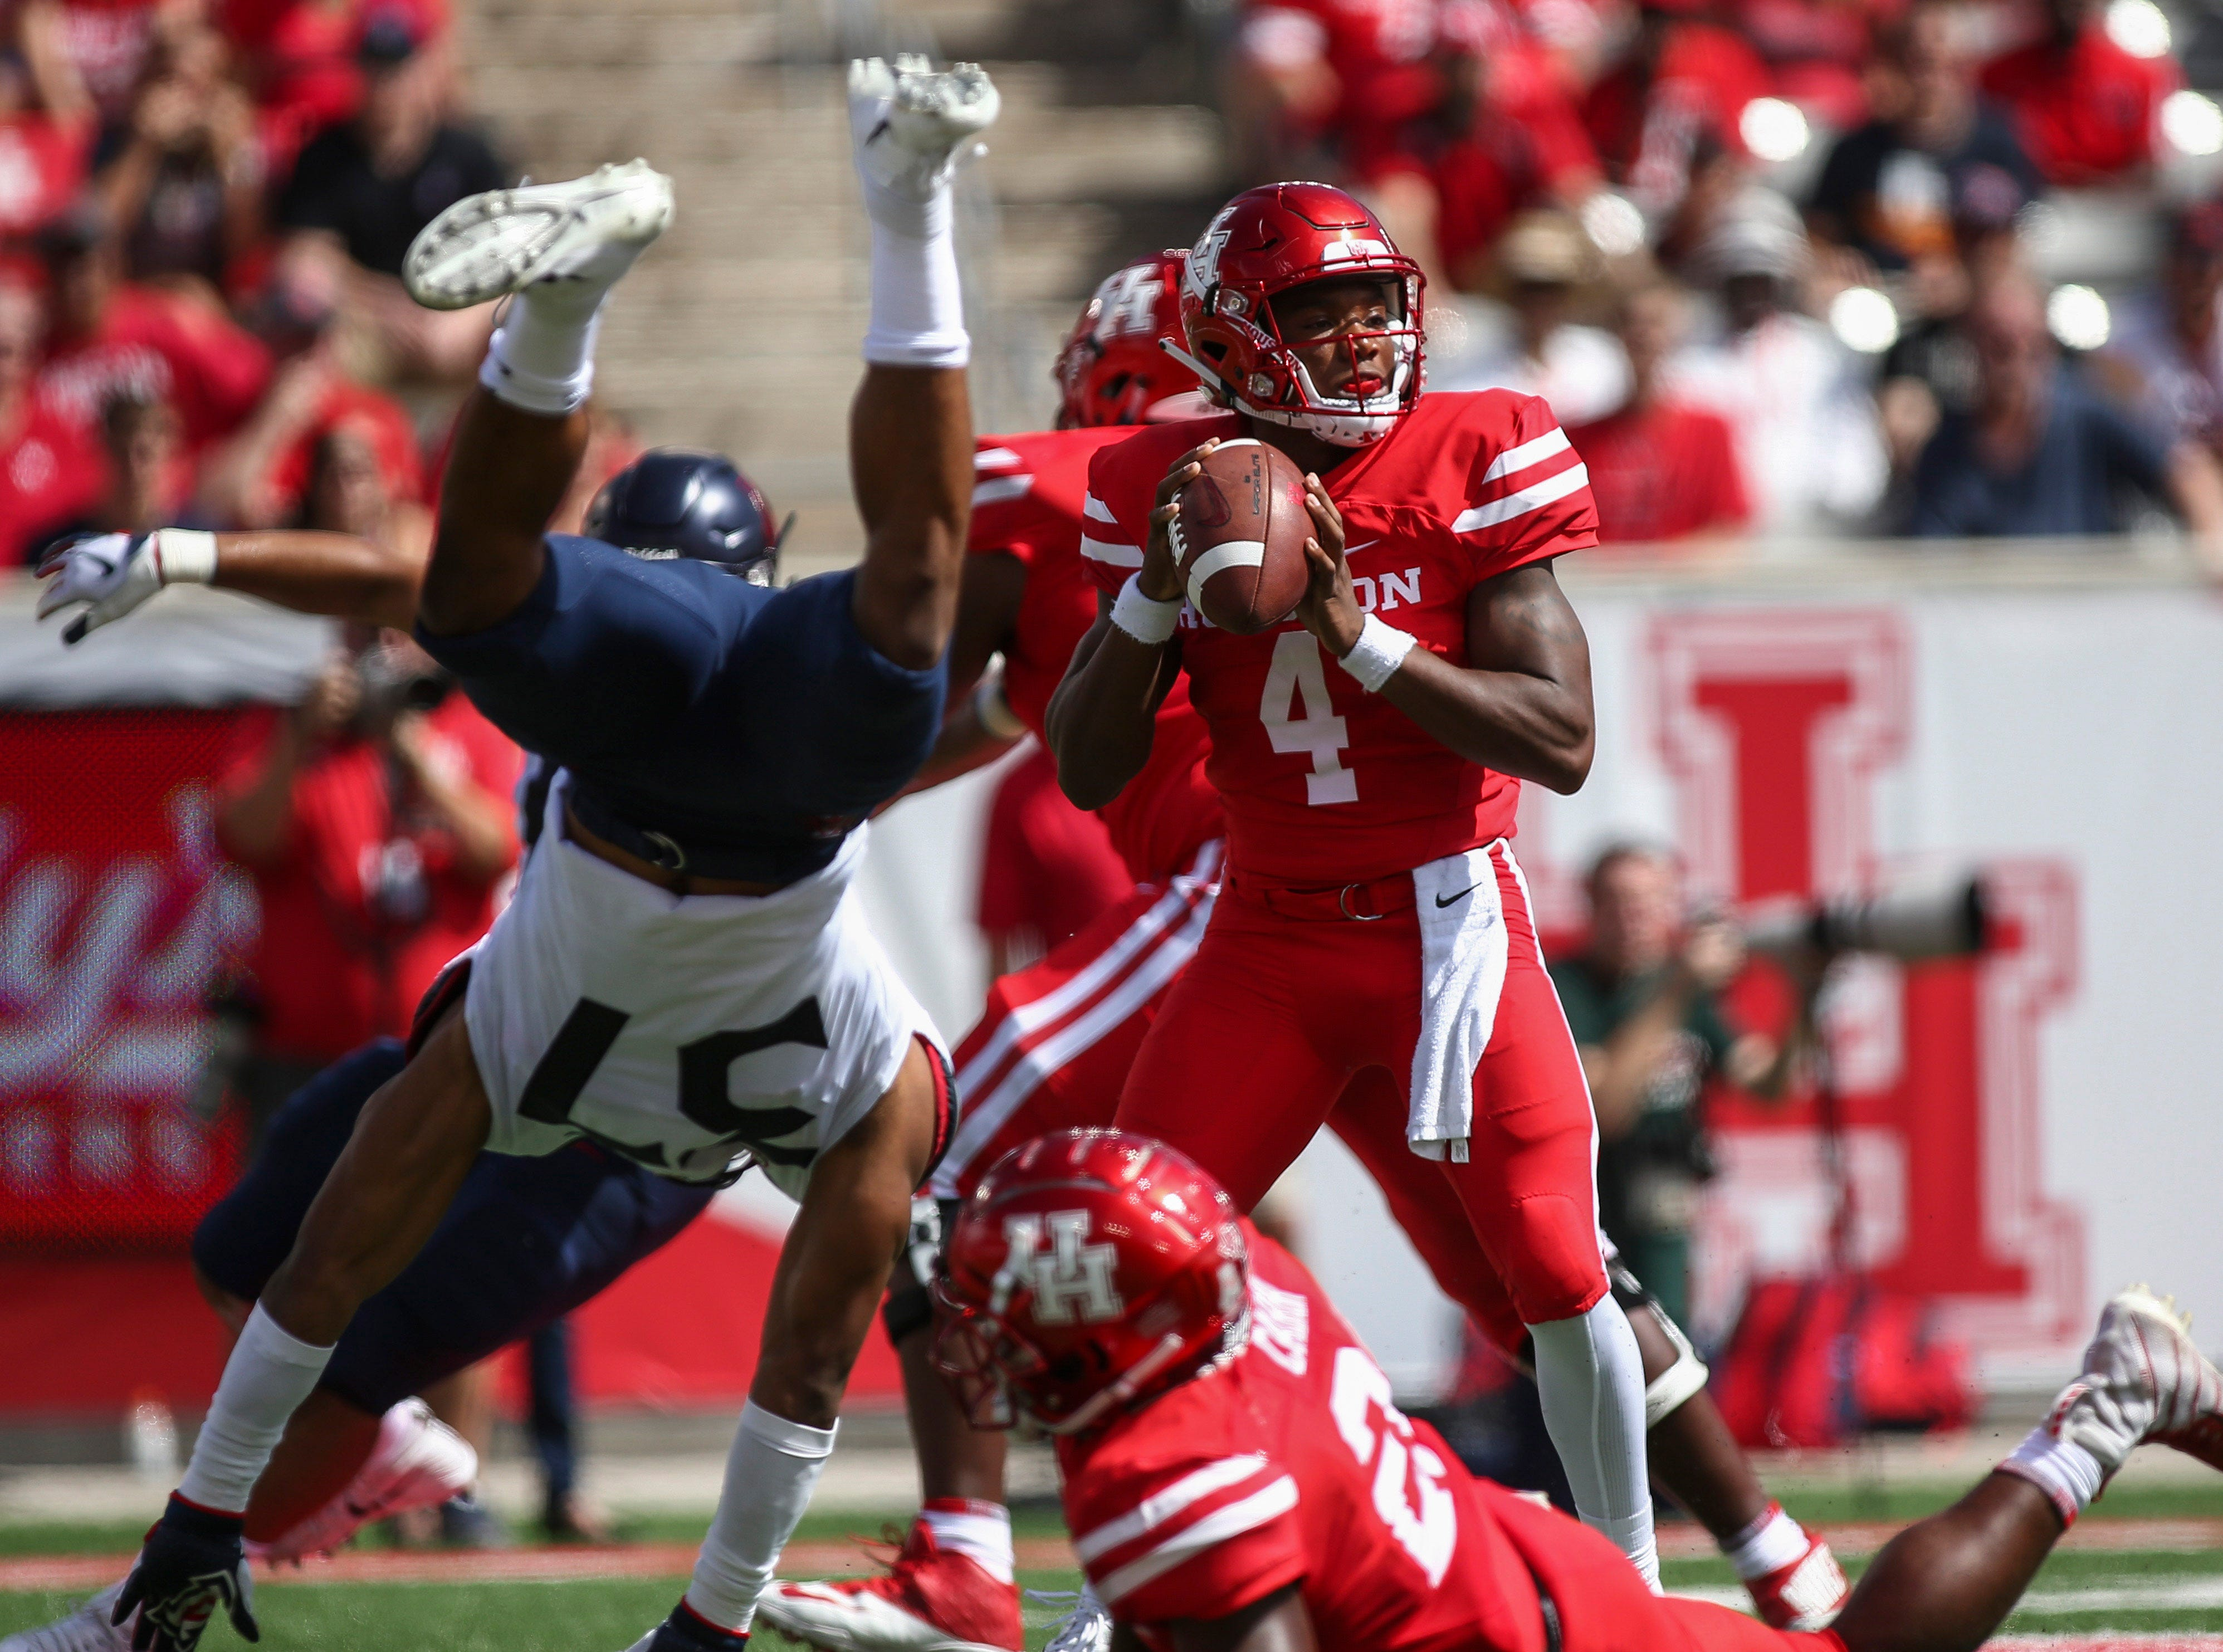 Arizona Wildcats safety Xavier Bell (37) flips as Houston Cougars quarterback D'Eriq King (4) attempts a pass during the first quarter at TDECU Stadium.